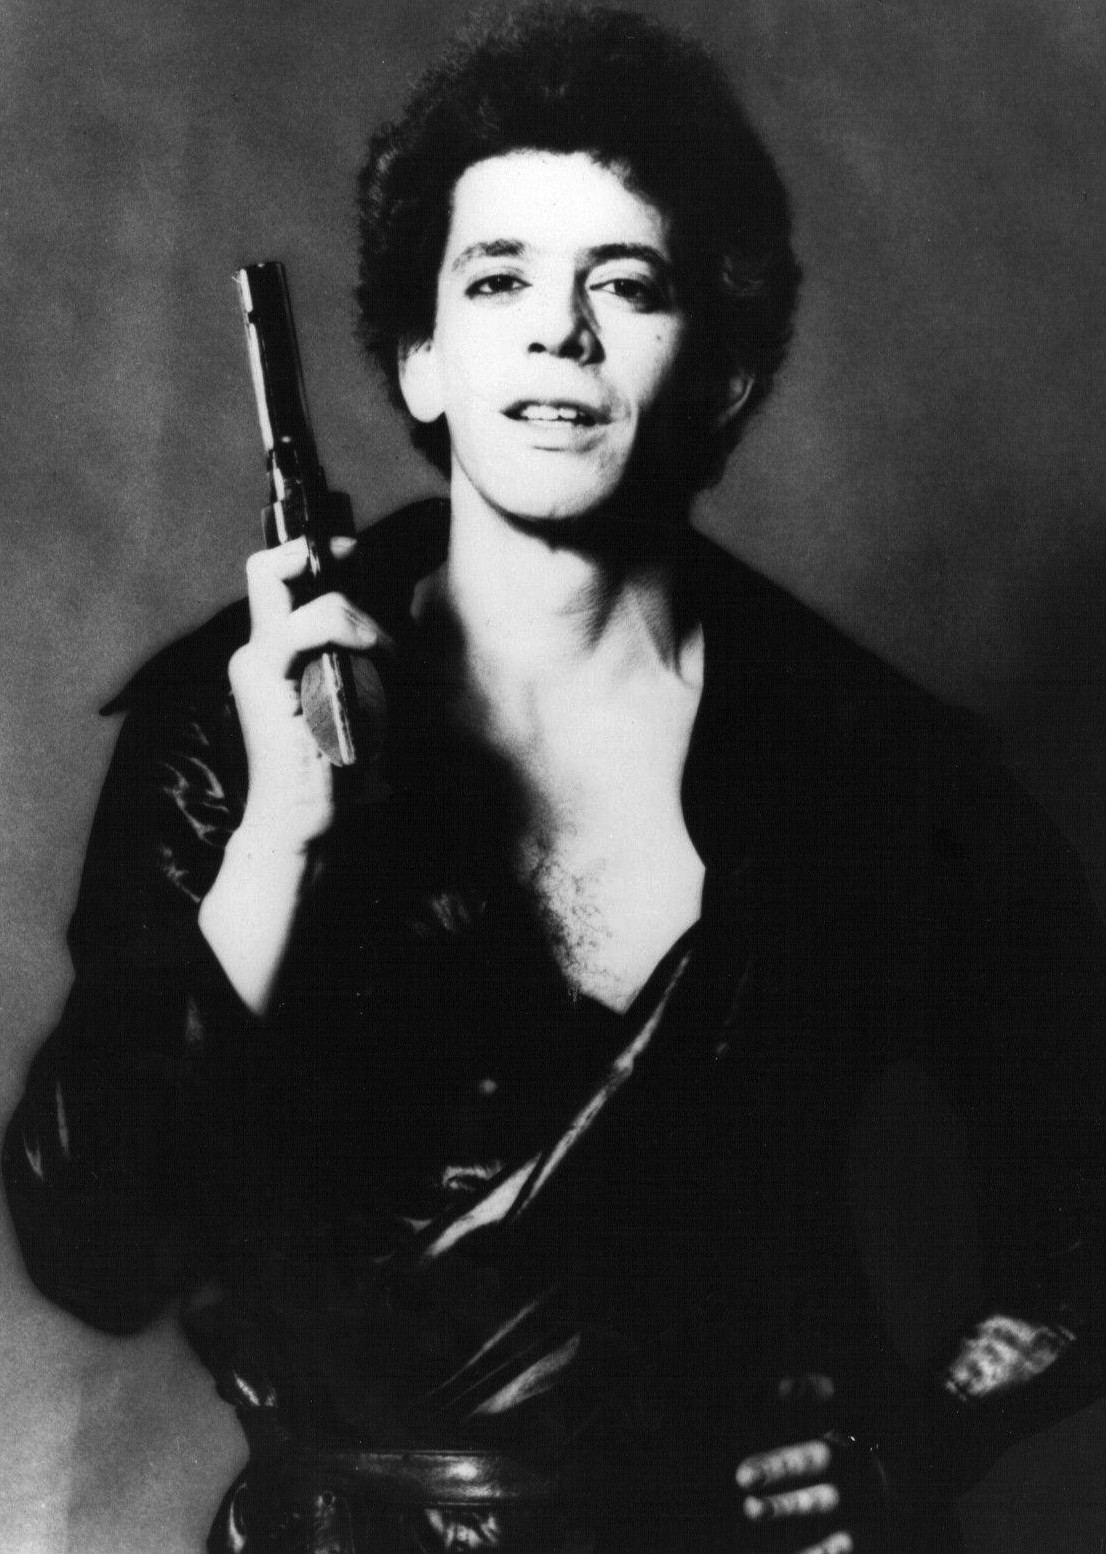 Lou Reed holding a gun during a 1977 photo shoot.